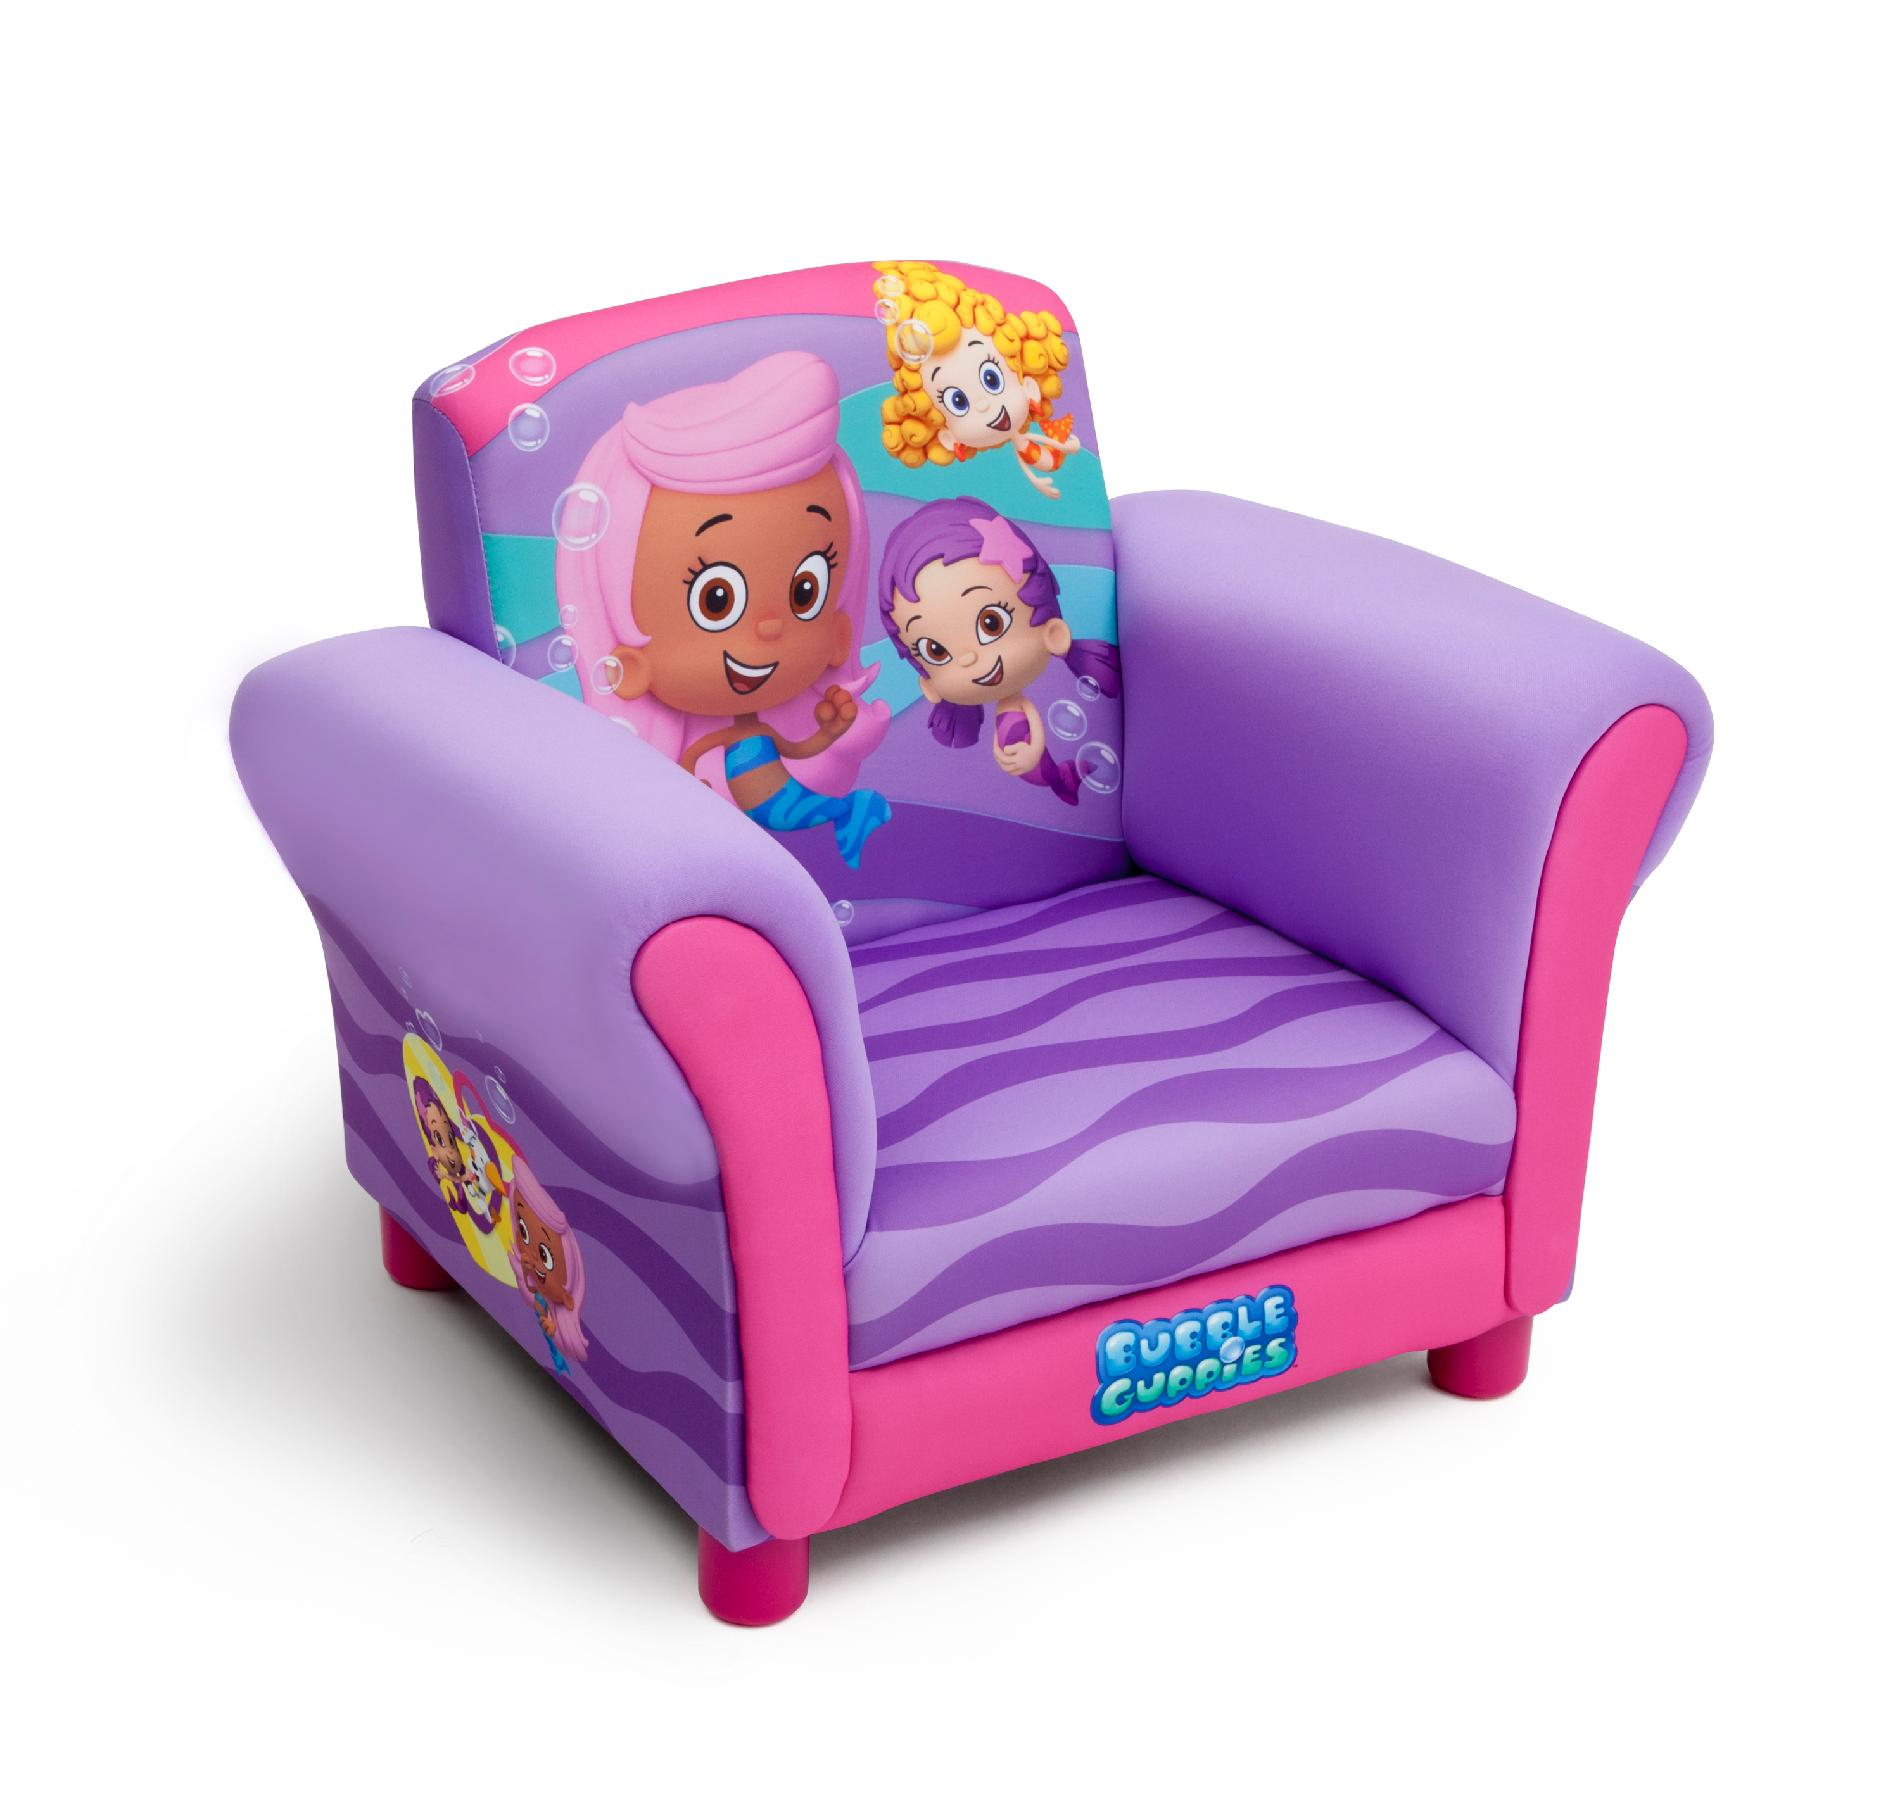 Toddler Chairs Upholstered Delta Children Bubble Guppies Upholstered Chair Baby